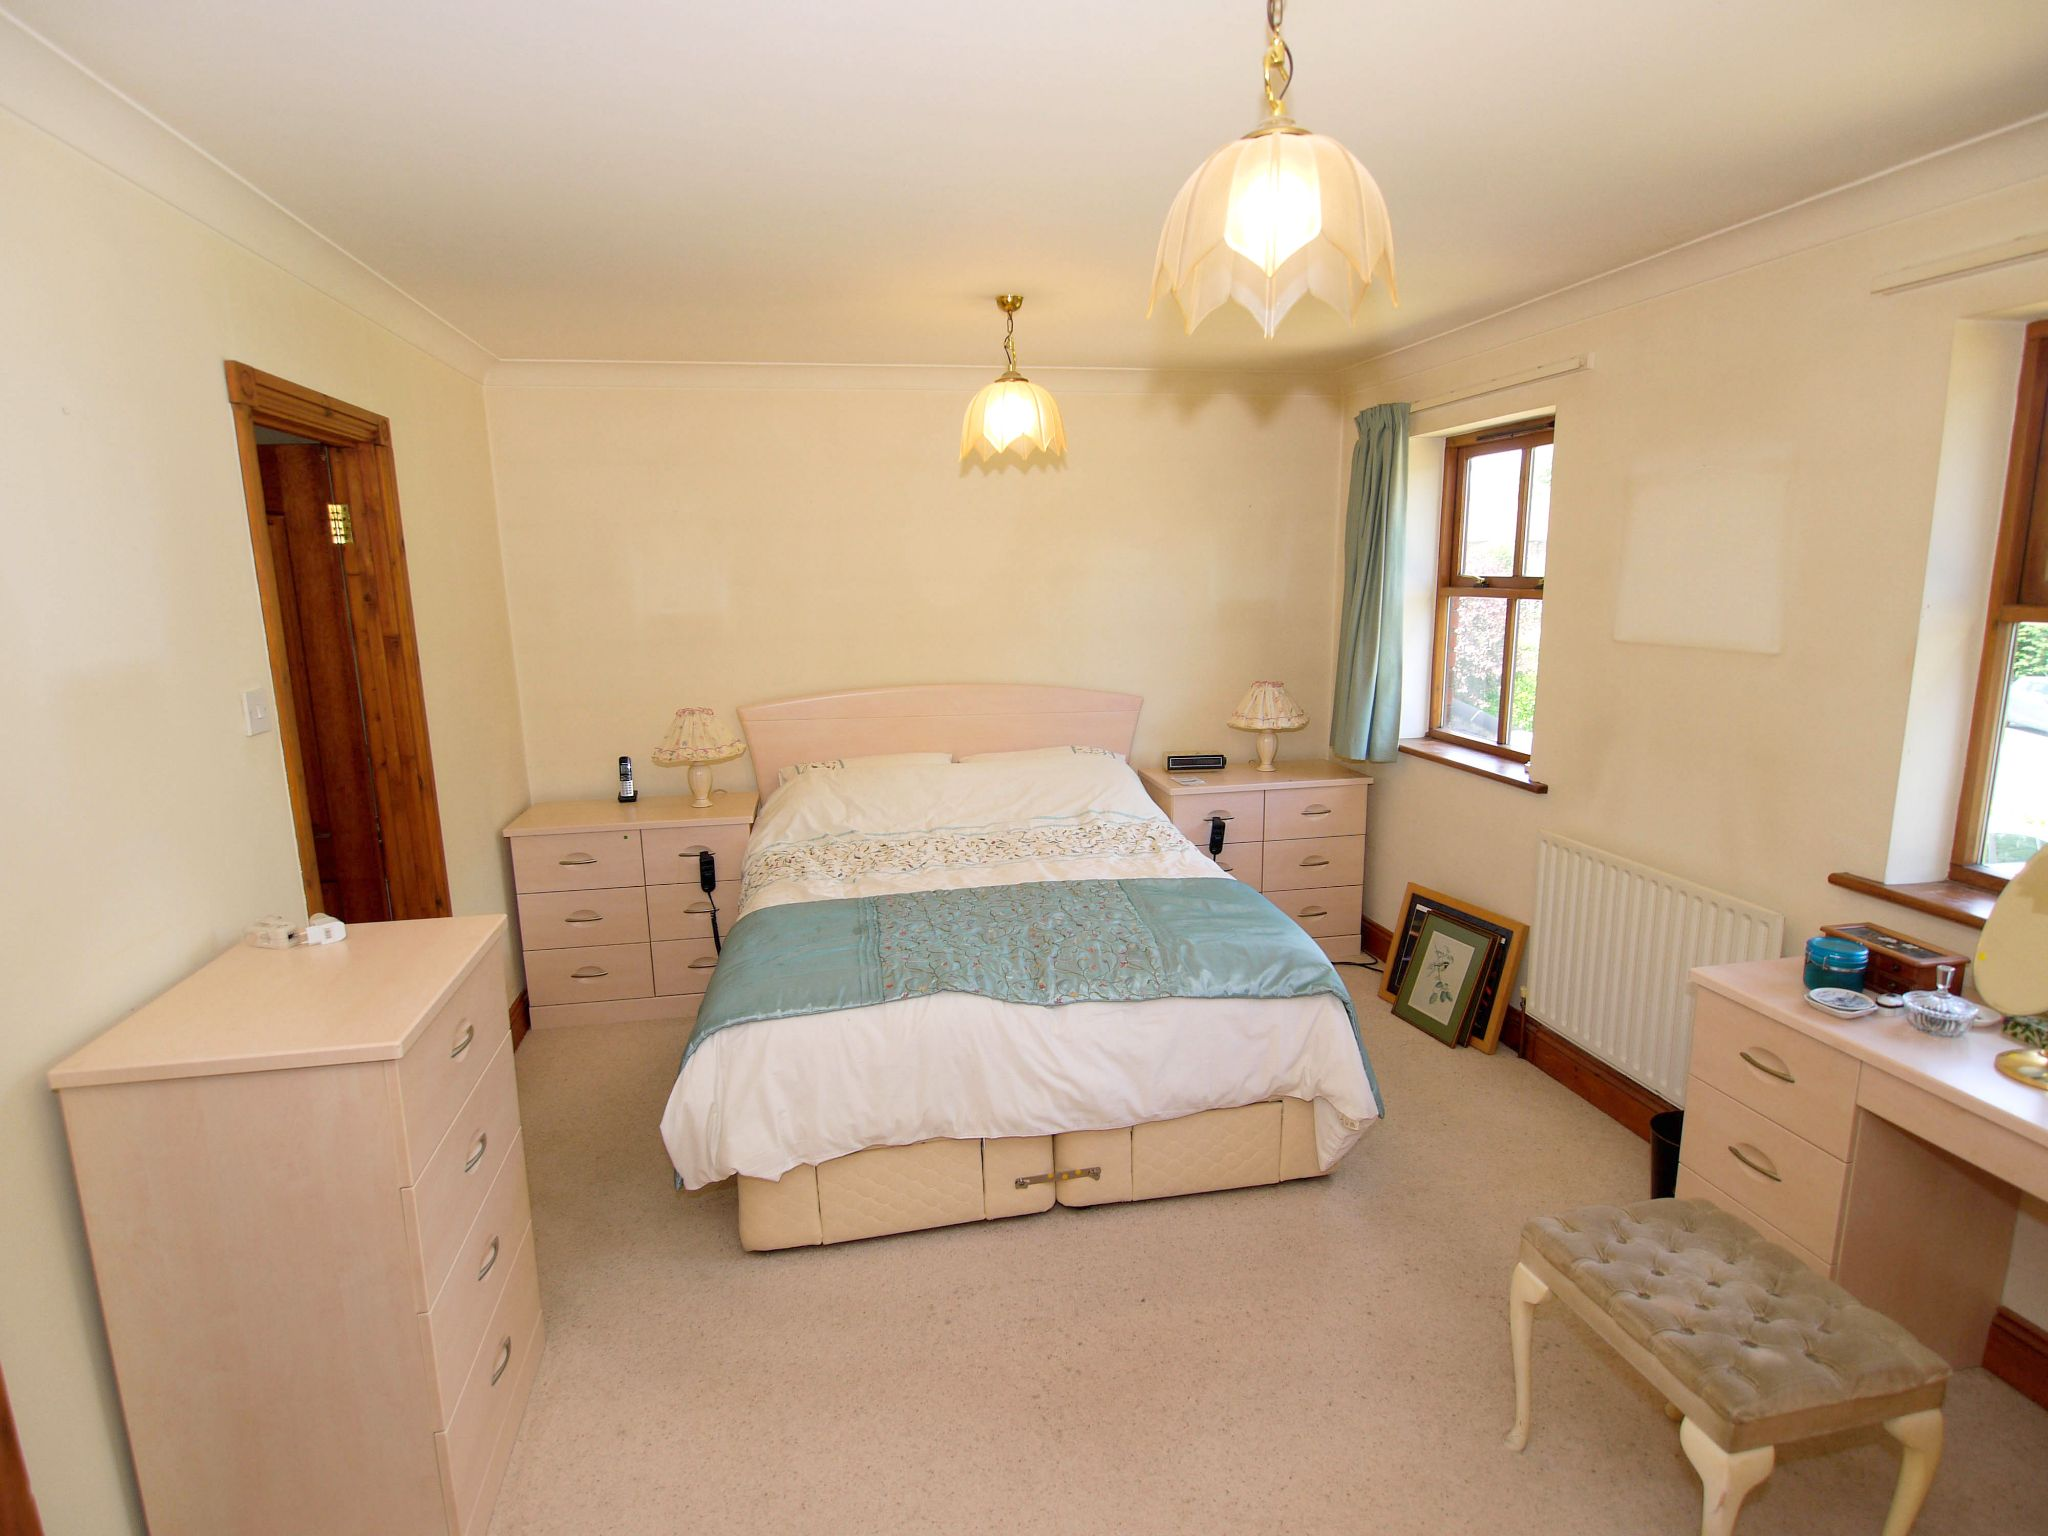 5 bedroom detached house For Sale in Tonbridge - Photograph 6